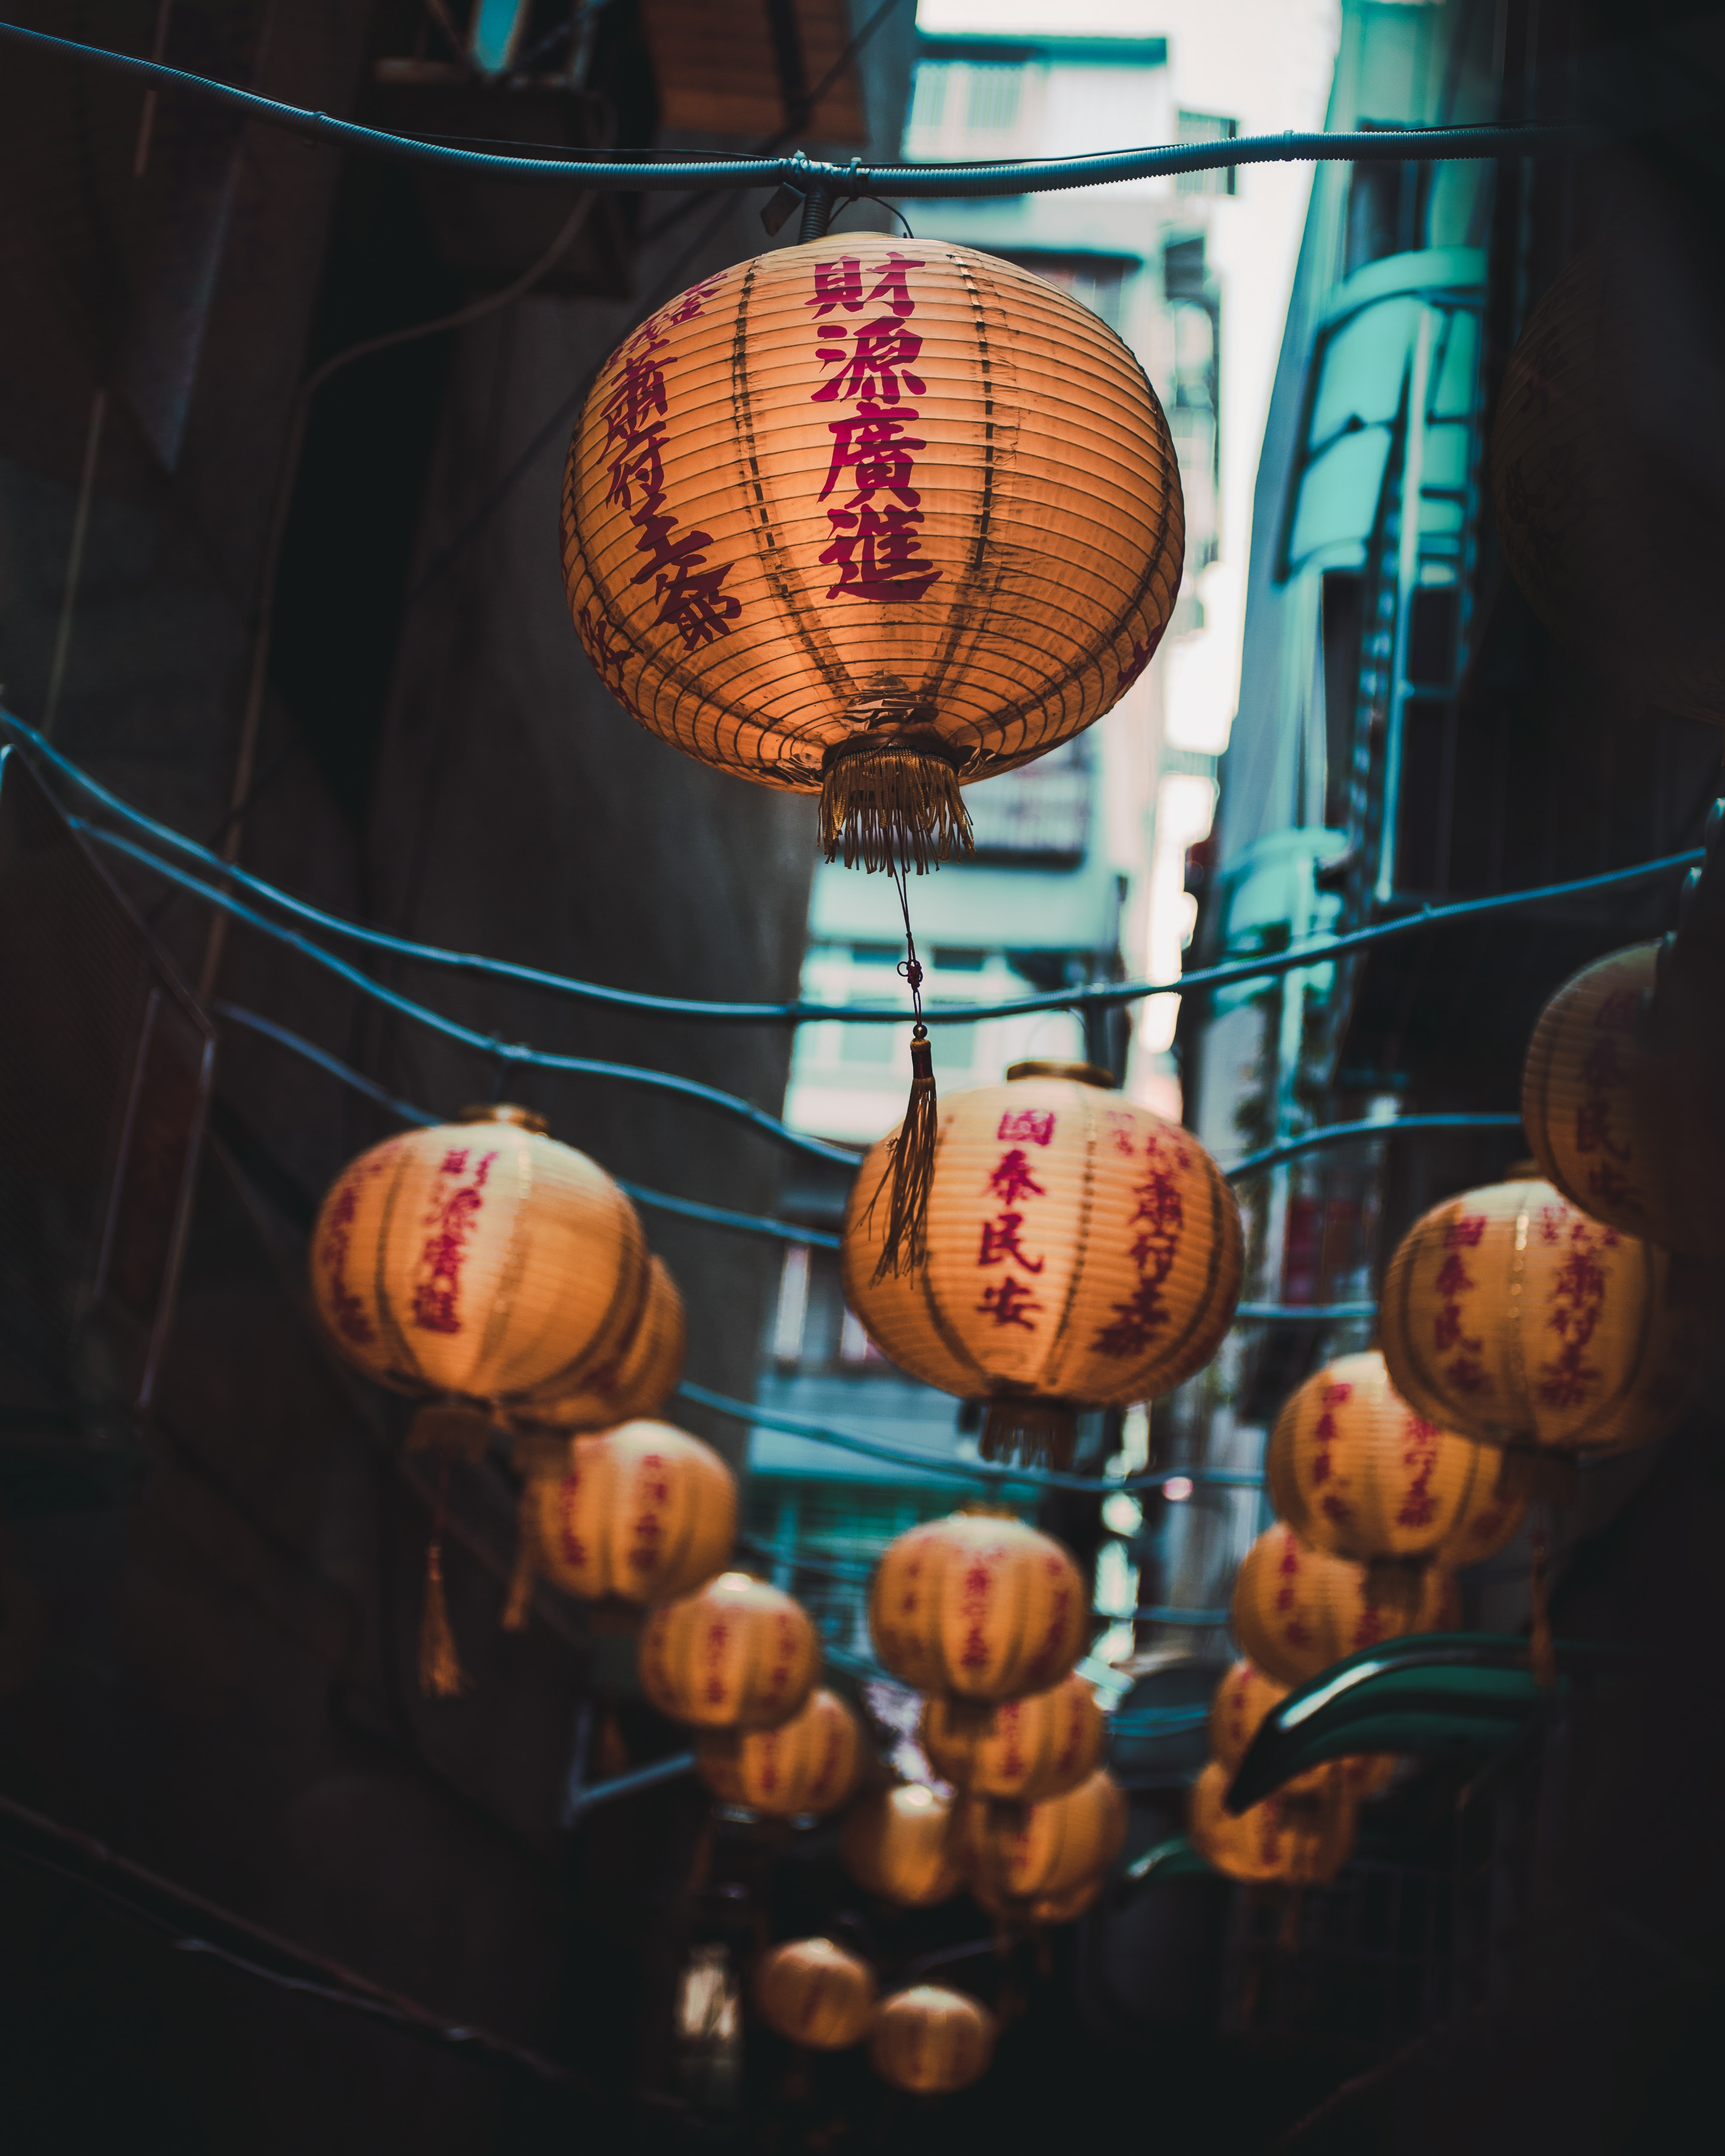 Chinese paper lanterns hanging on strings